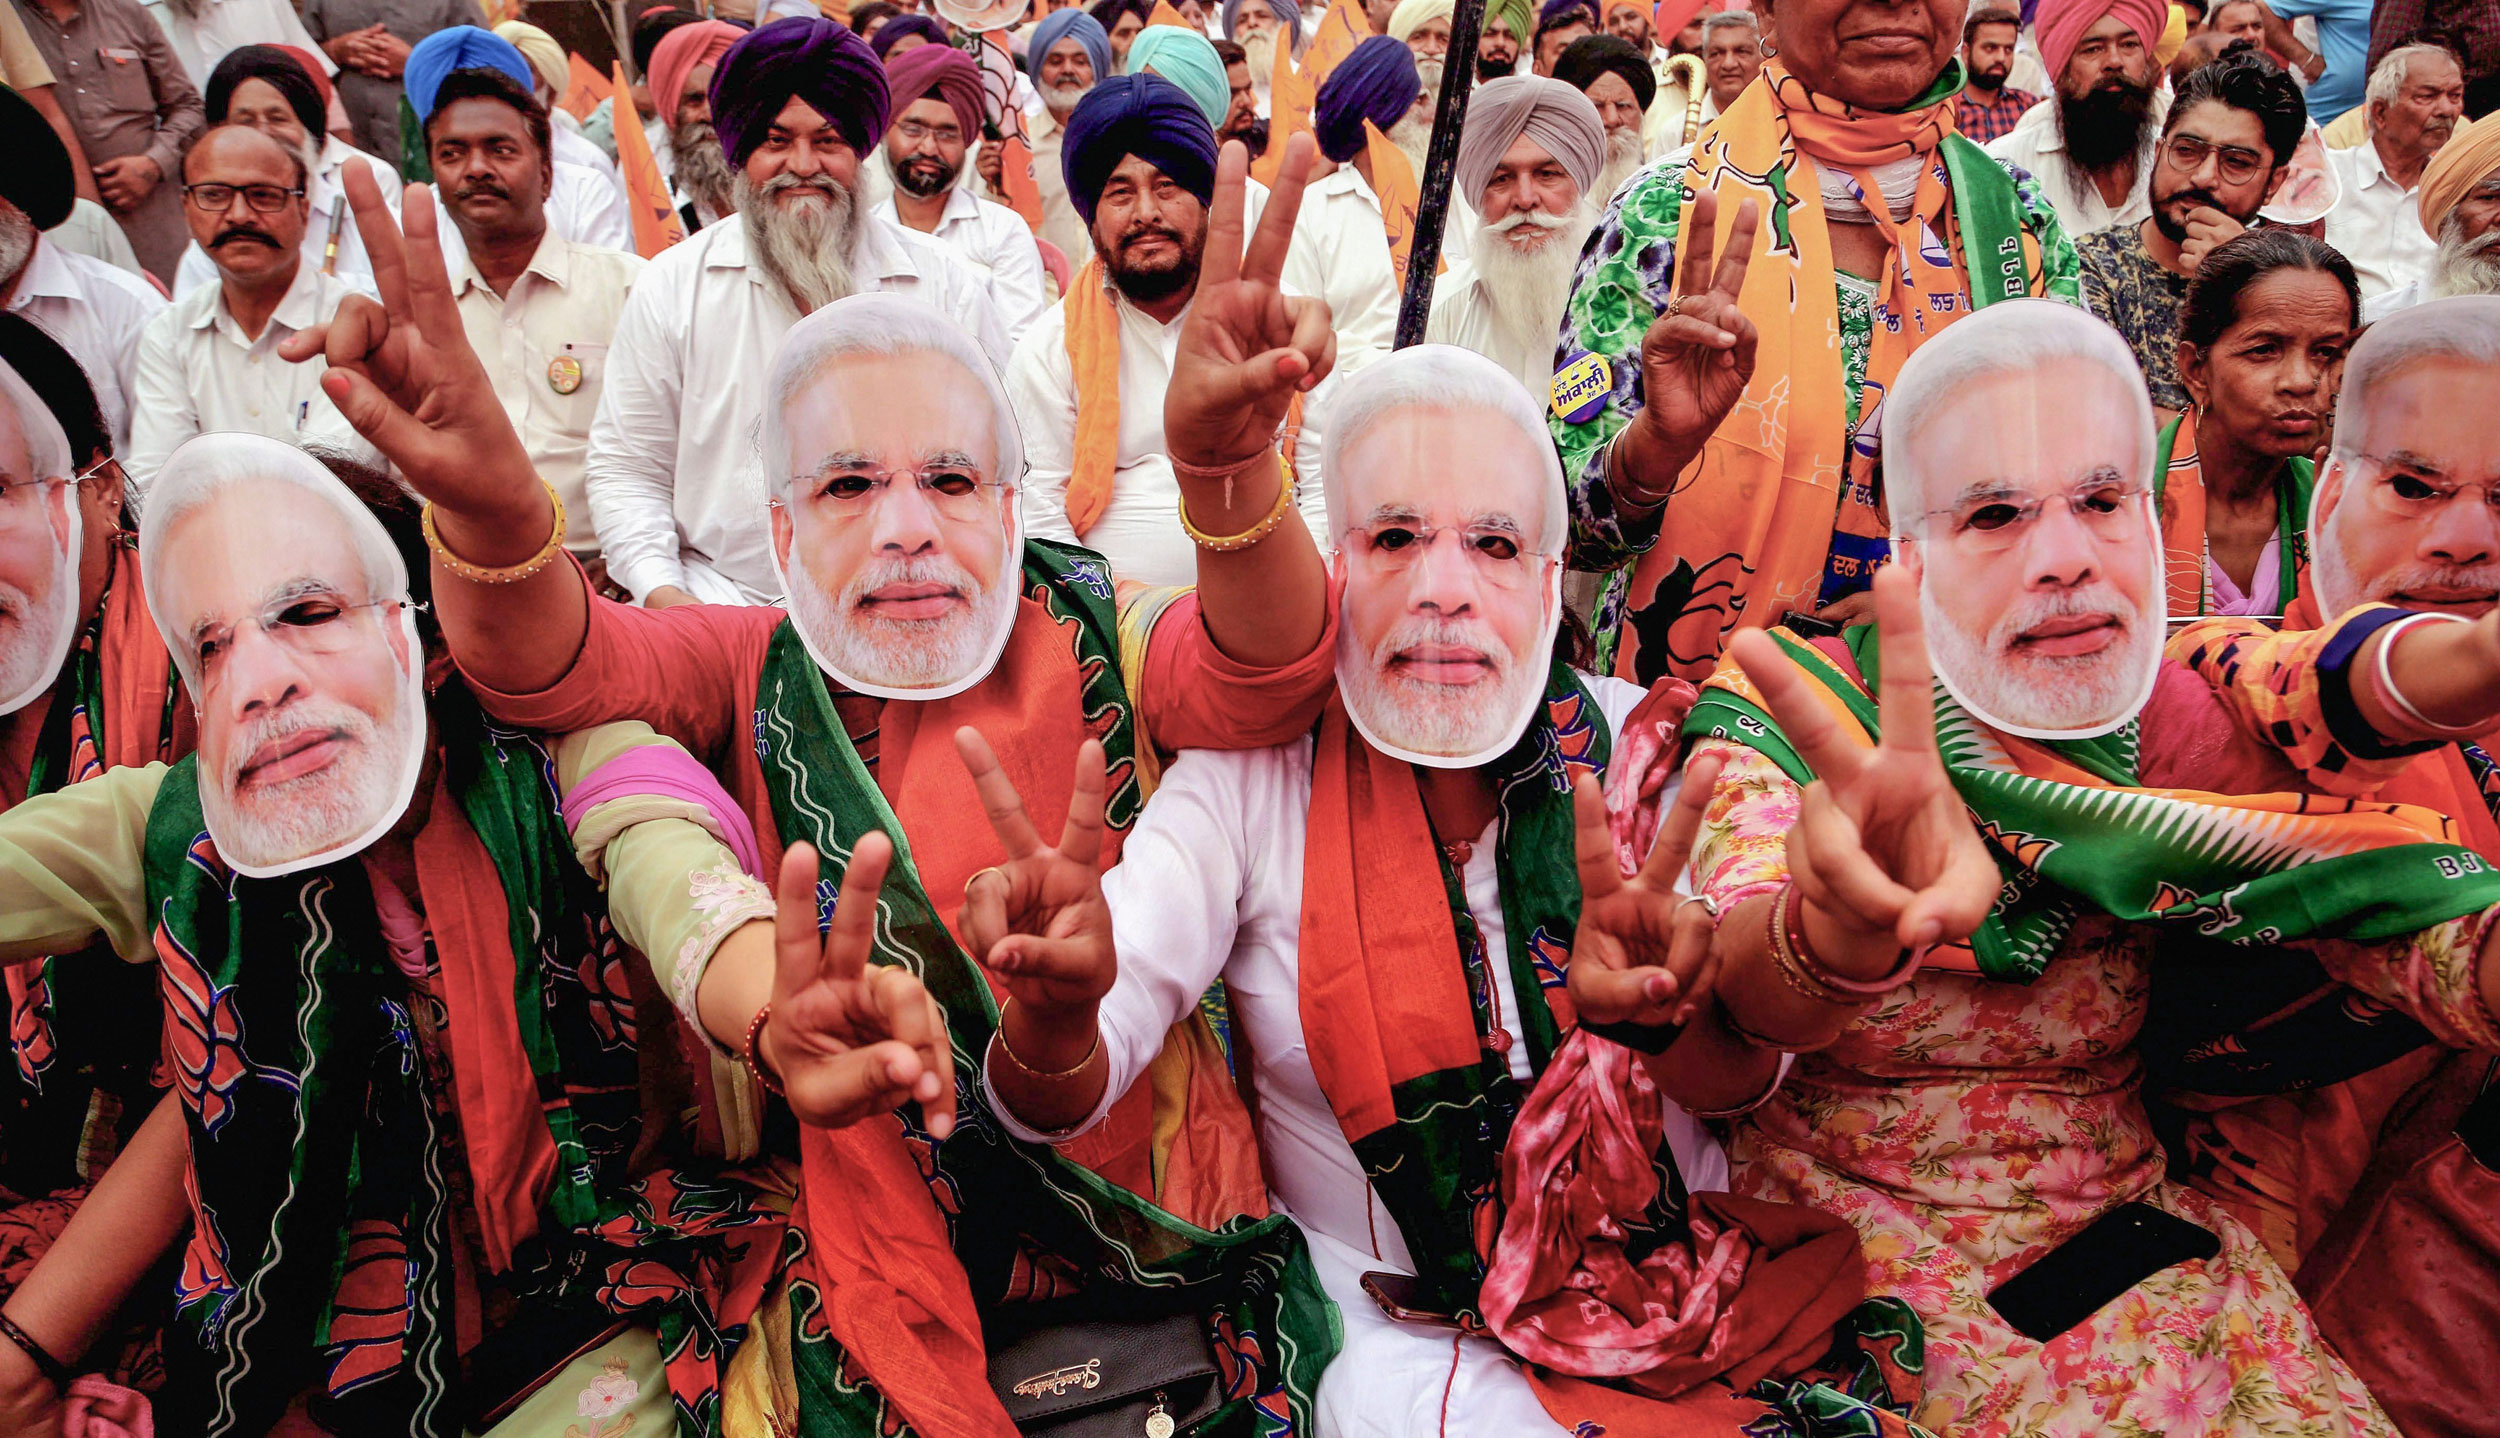 BJP supporters wear masks of Prime Minister Narendra Modi during an election rally for the last phase of the Lok Sabha polls, in Patiala, on May 16, 2019.